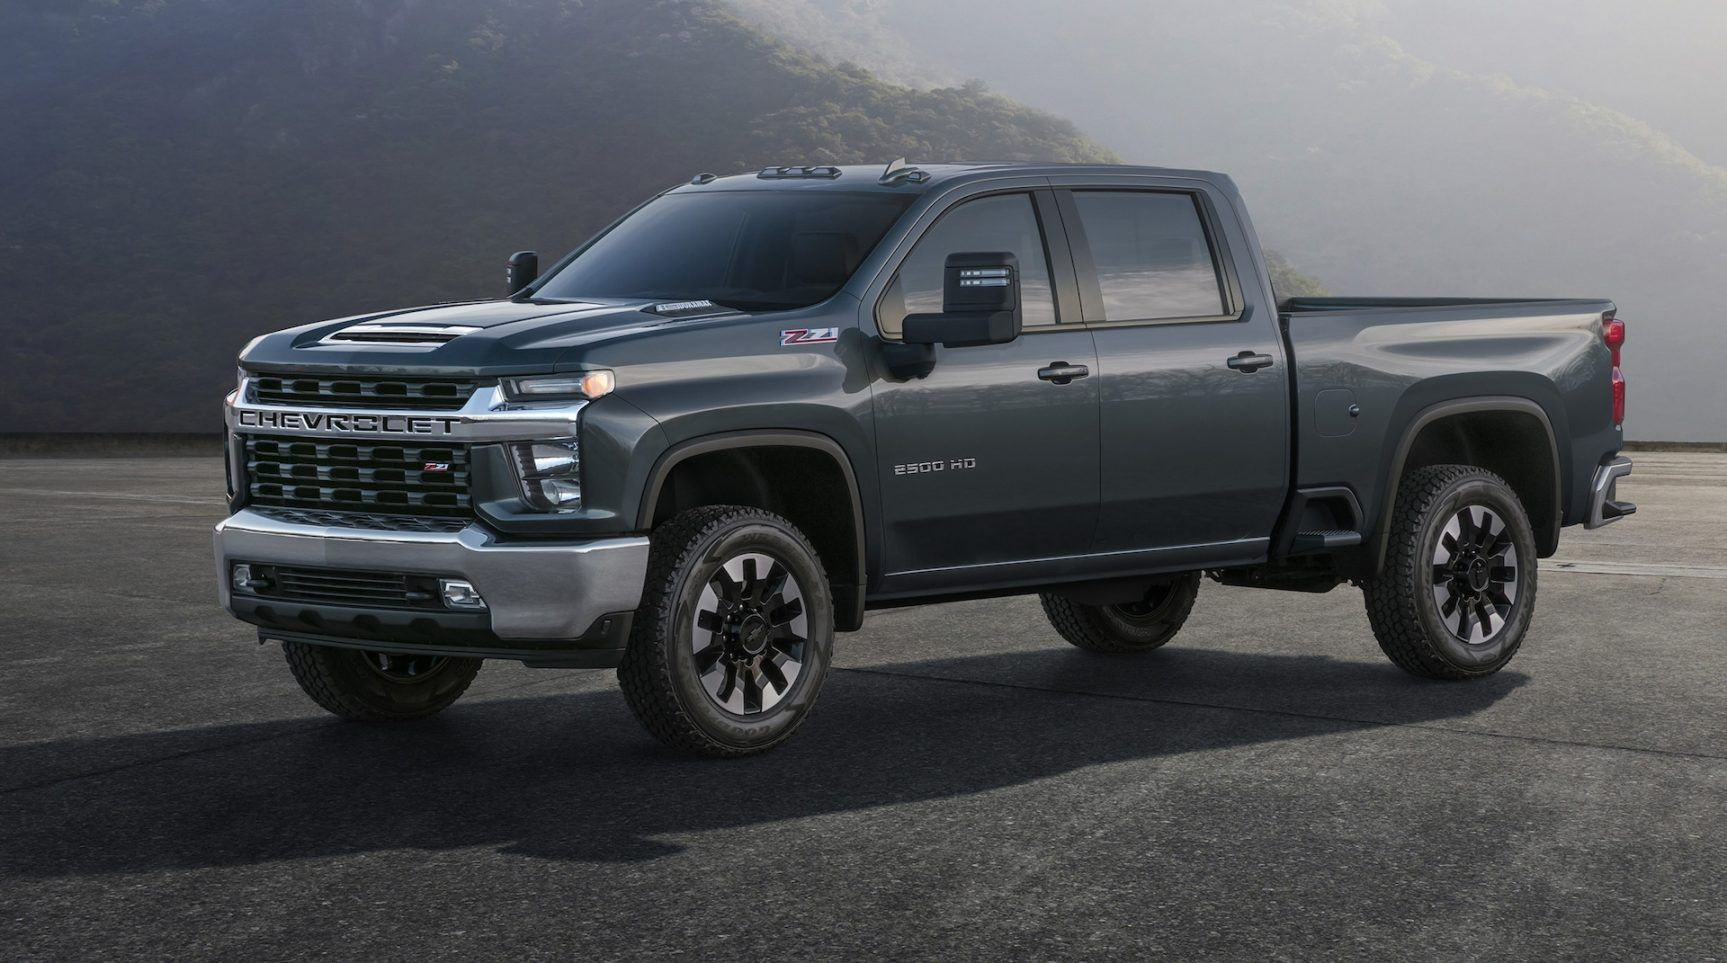 2021 Chevrolet Silverado Could Get Major Interior Review And Photos